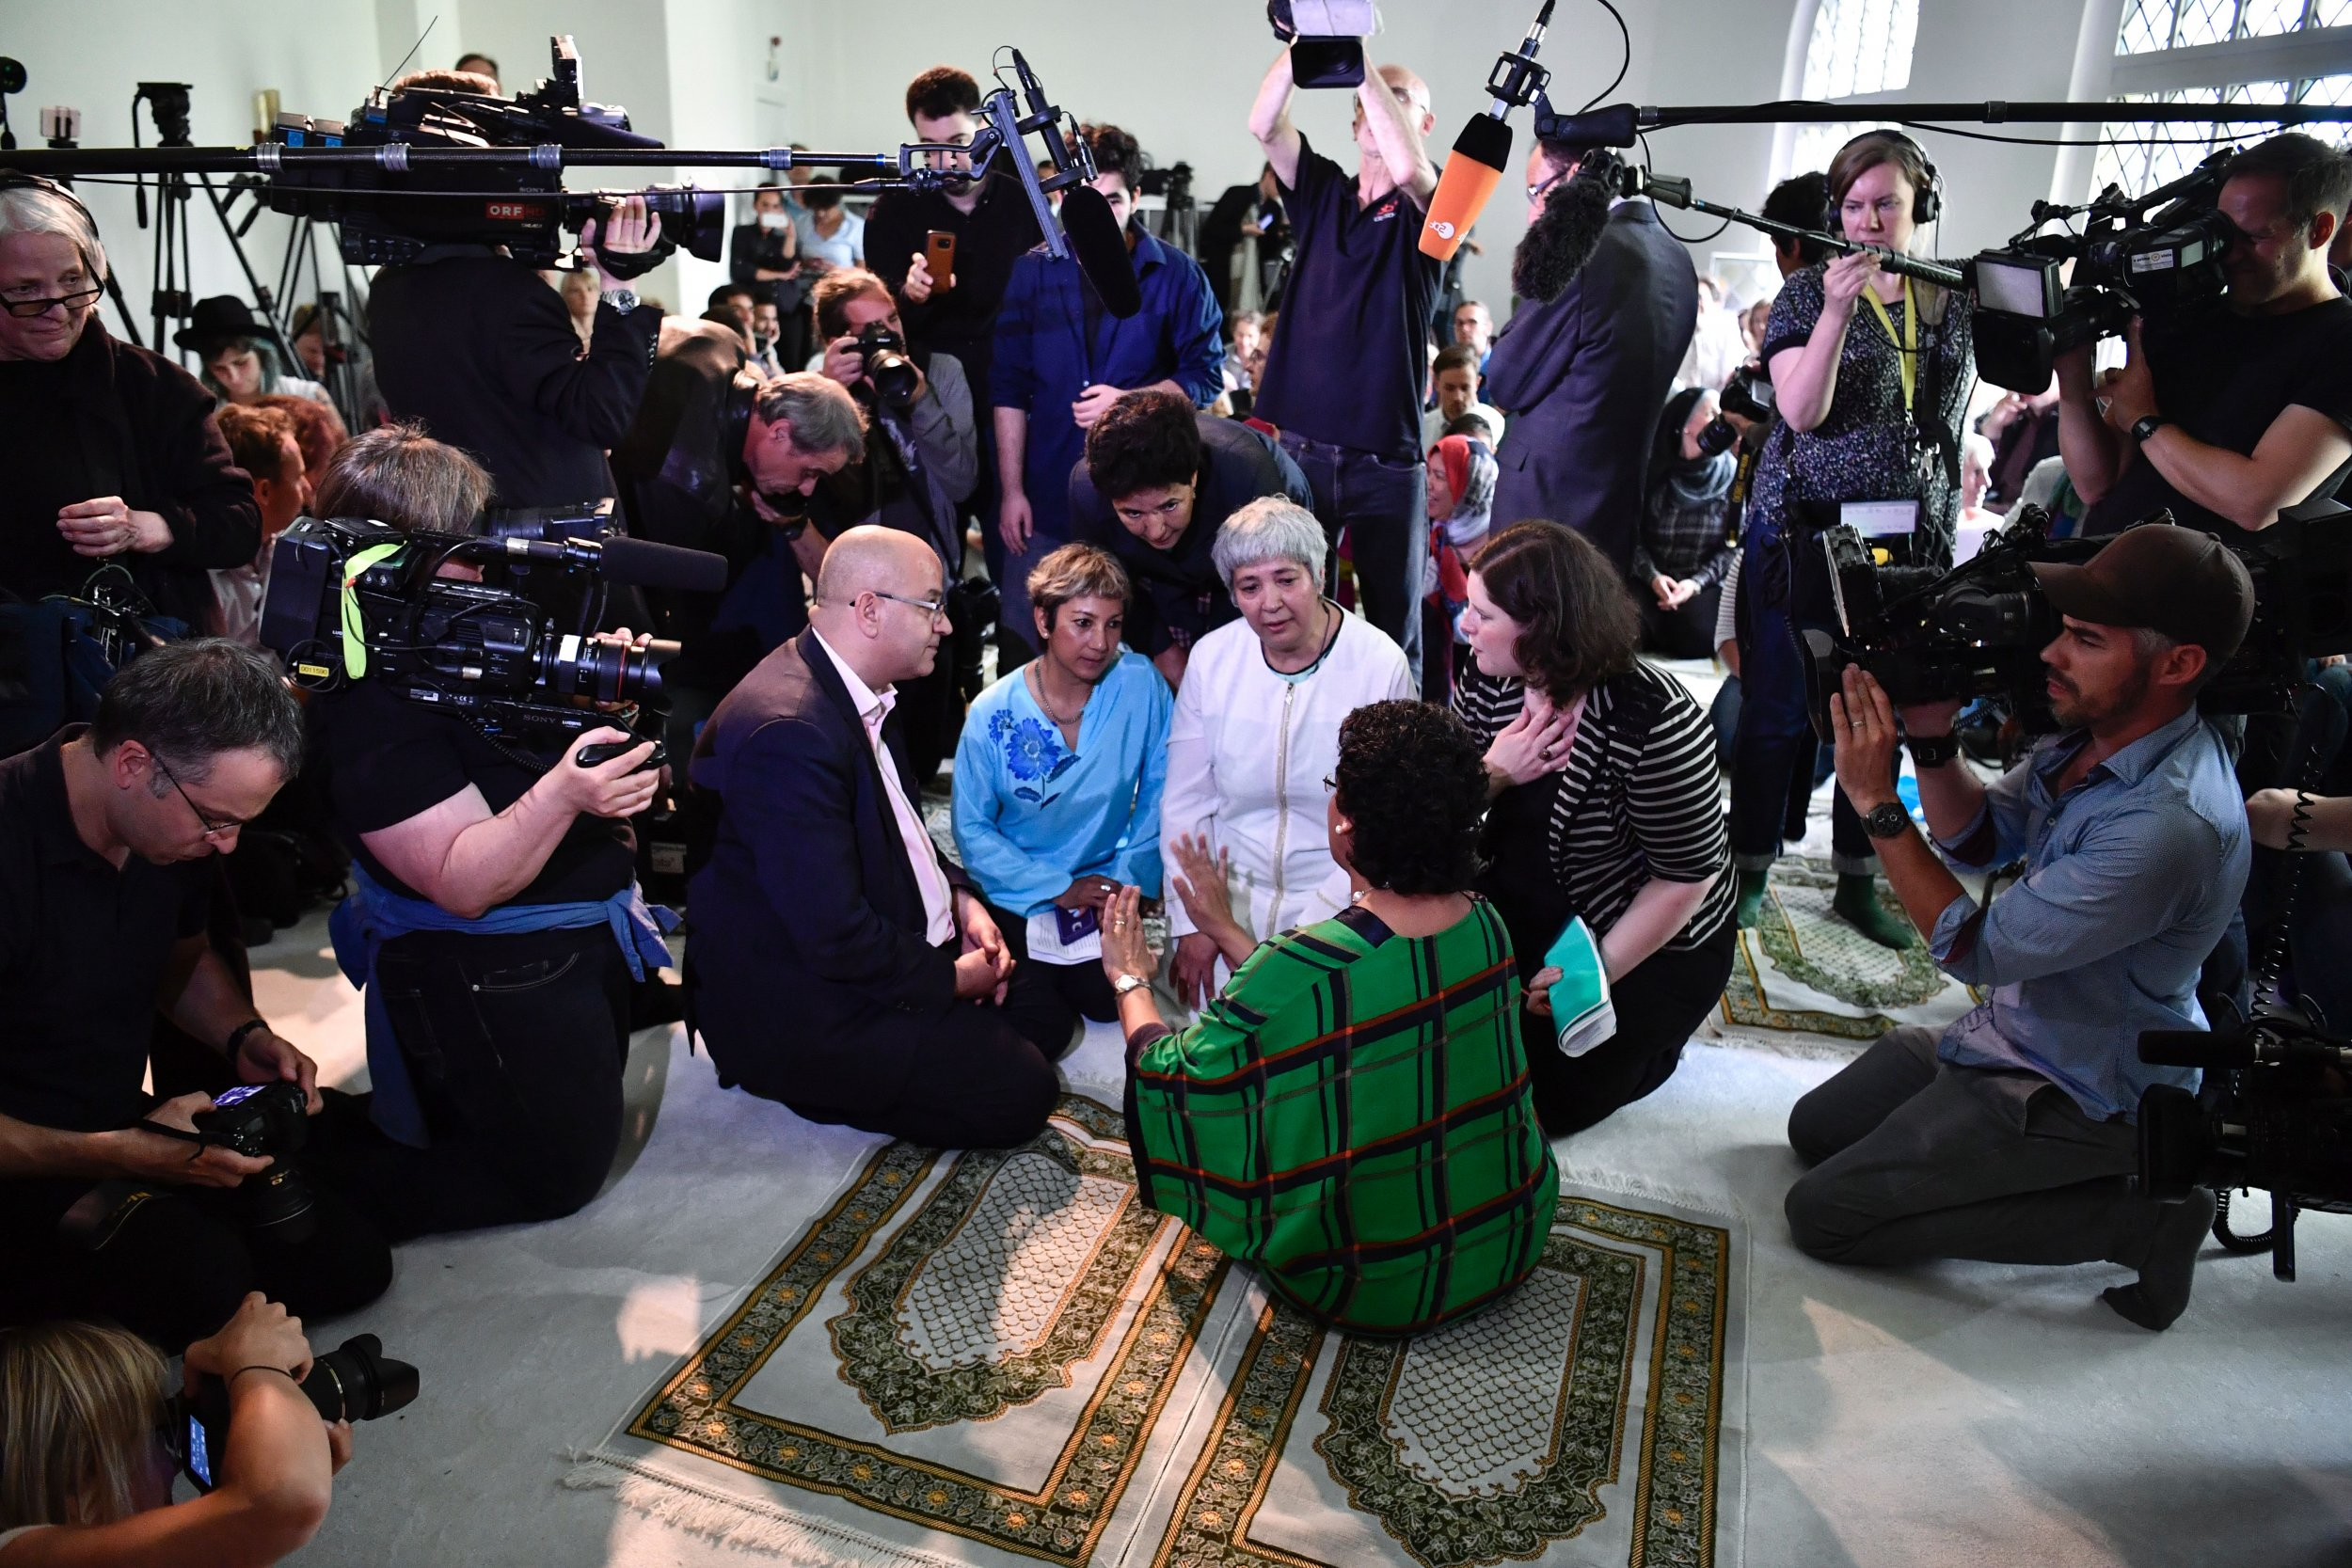 Germany liberal mosque meeting